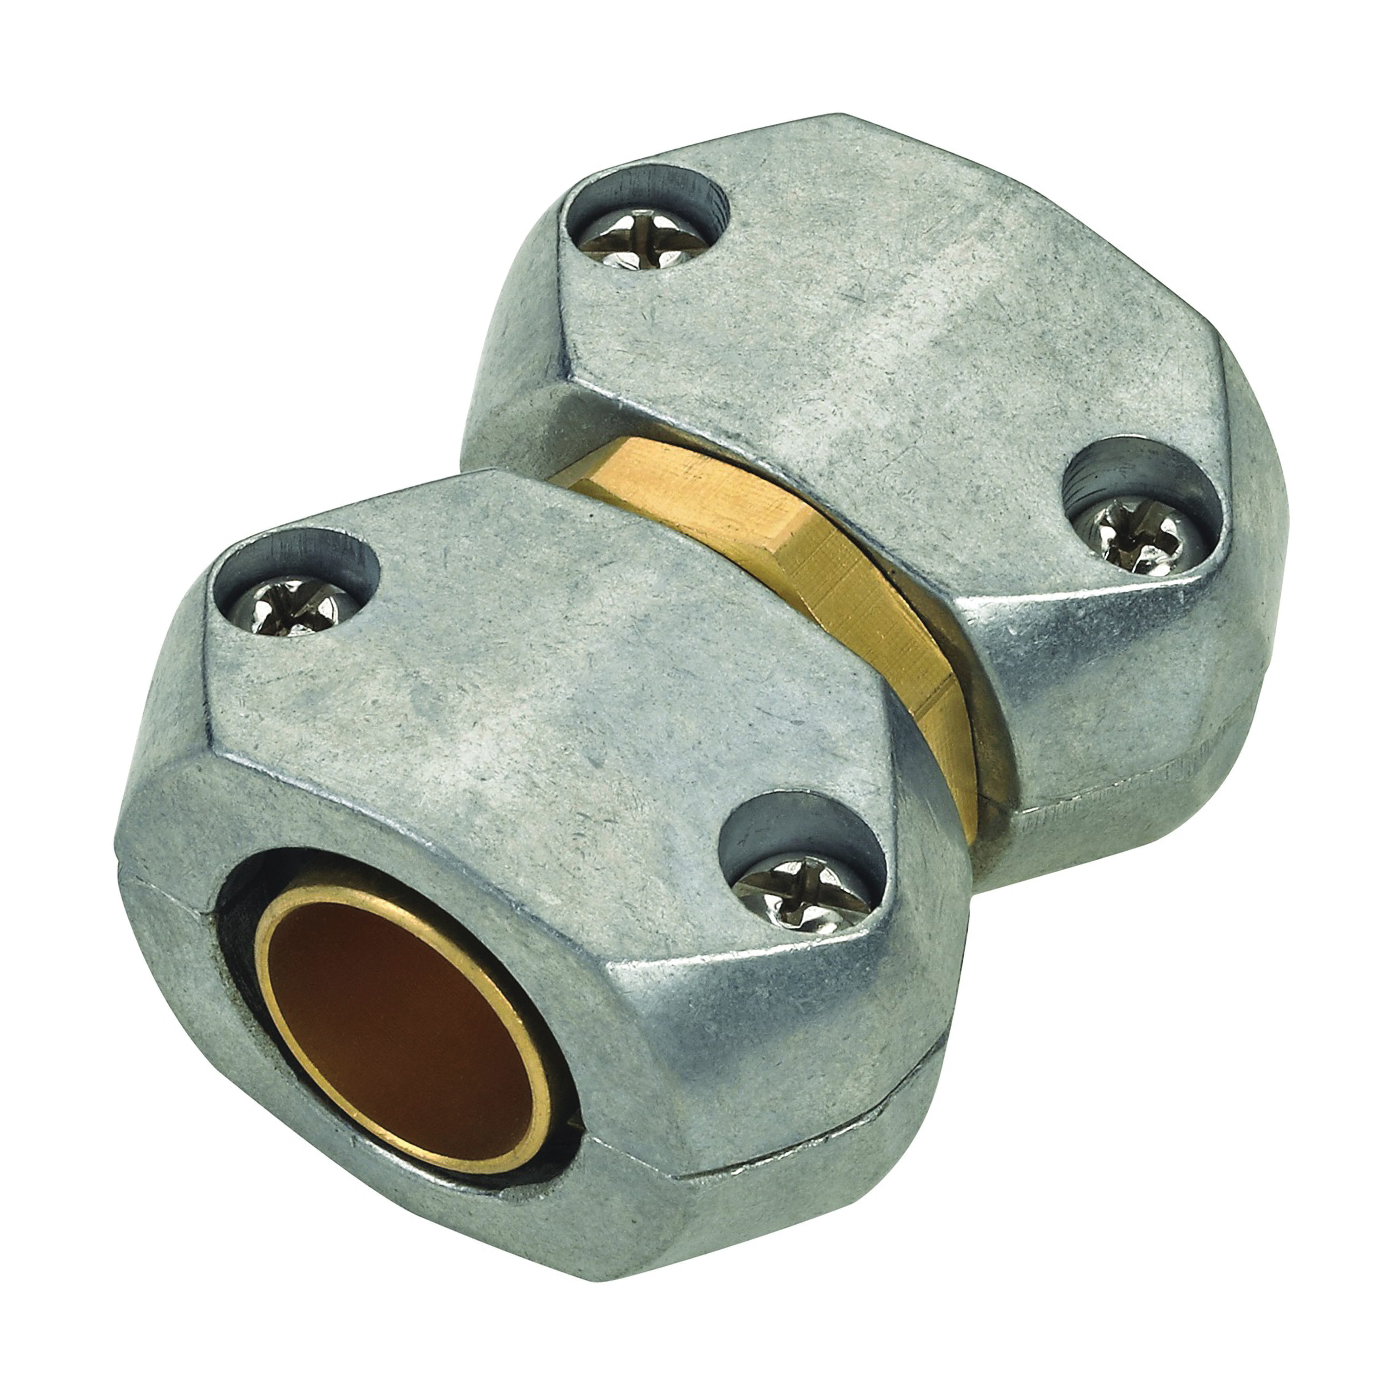 Picture of Landscapers Select GC535 Hose Mender, 5/8 to 3/4 in, Brass and zinc, Brass and Silver